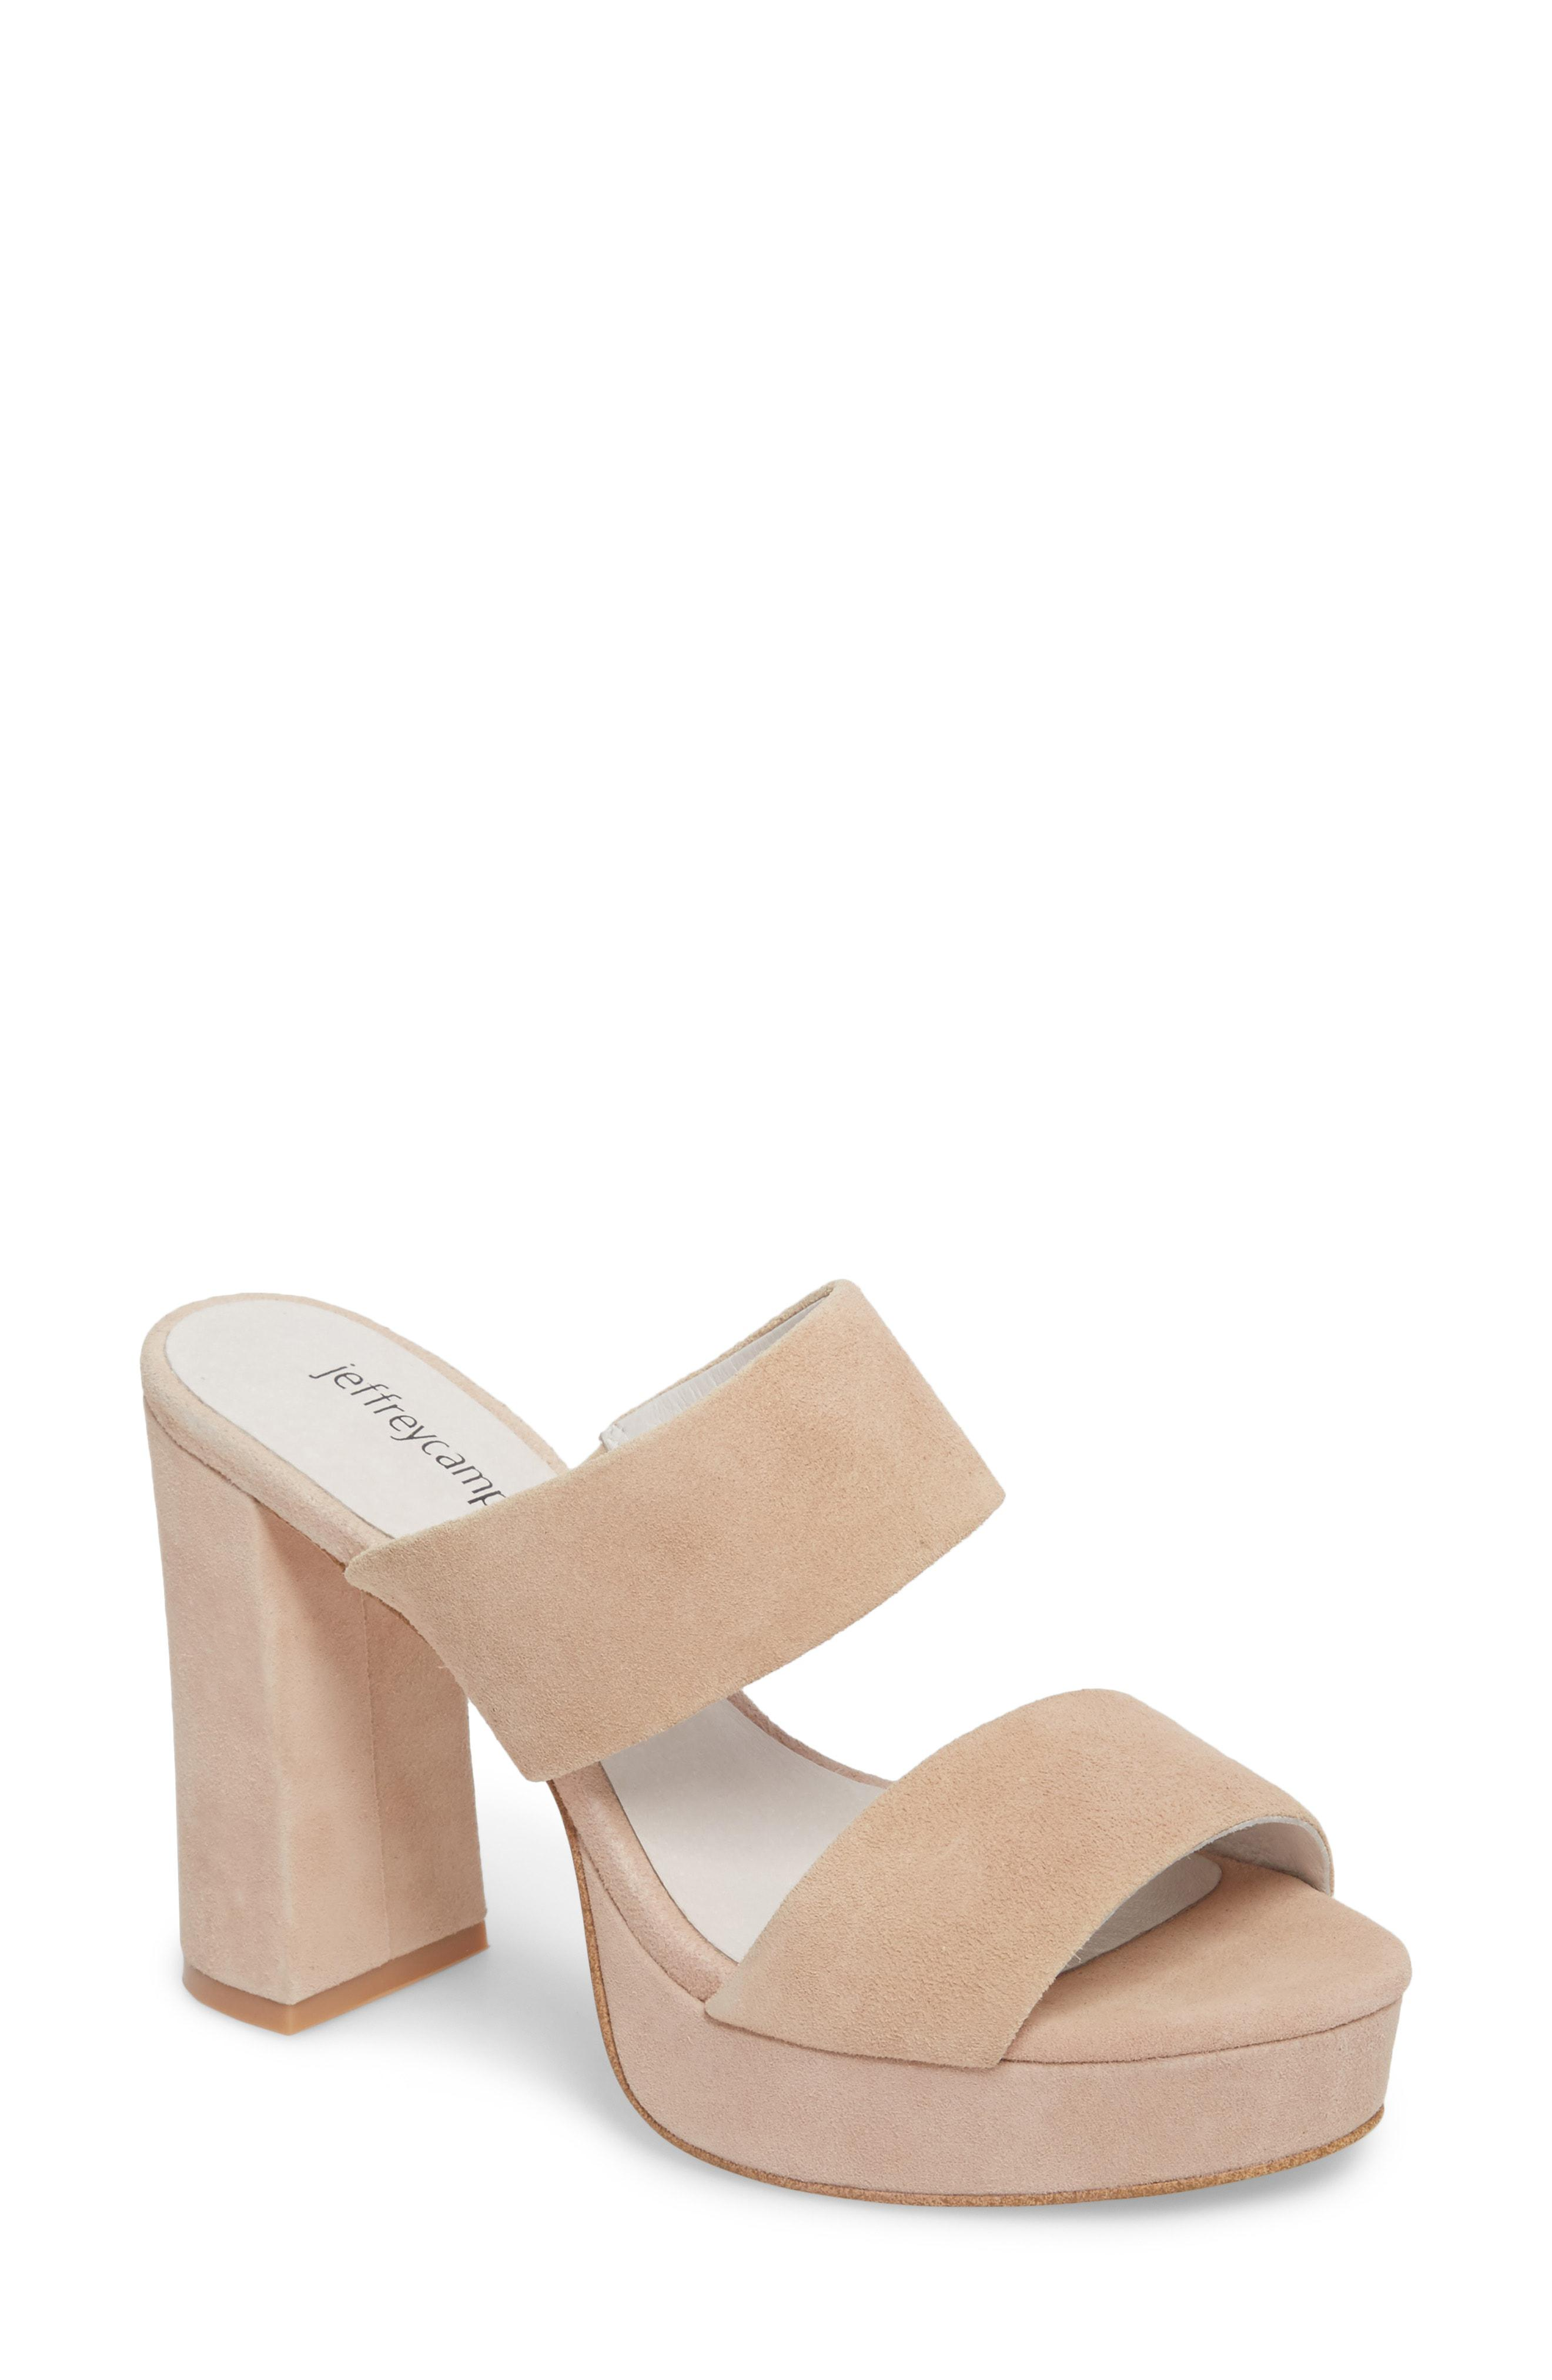 902faa170be3 Lyst - Jeffrey Campbell Adriana Double Band Platform Sandal in Pink